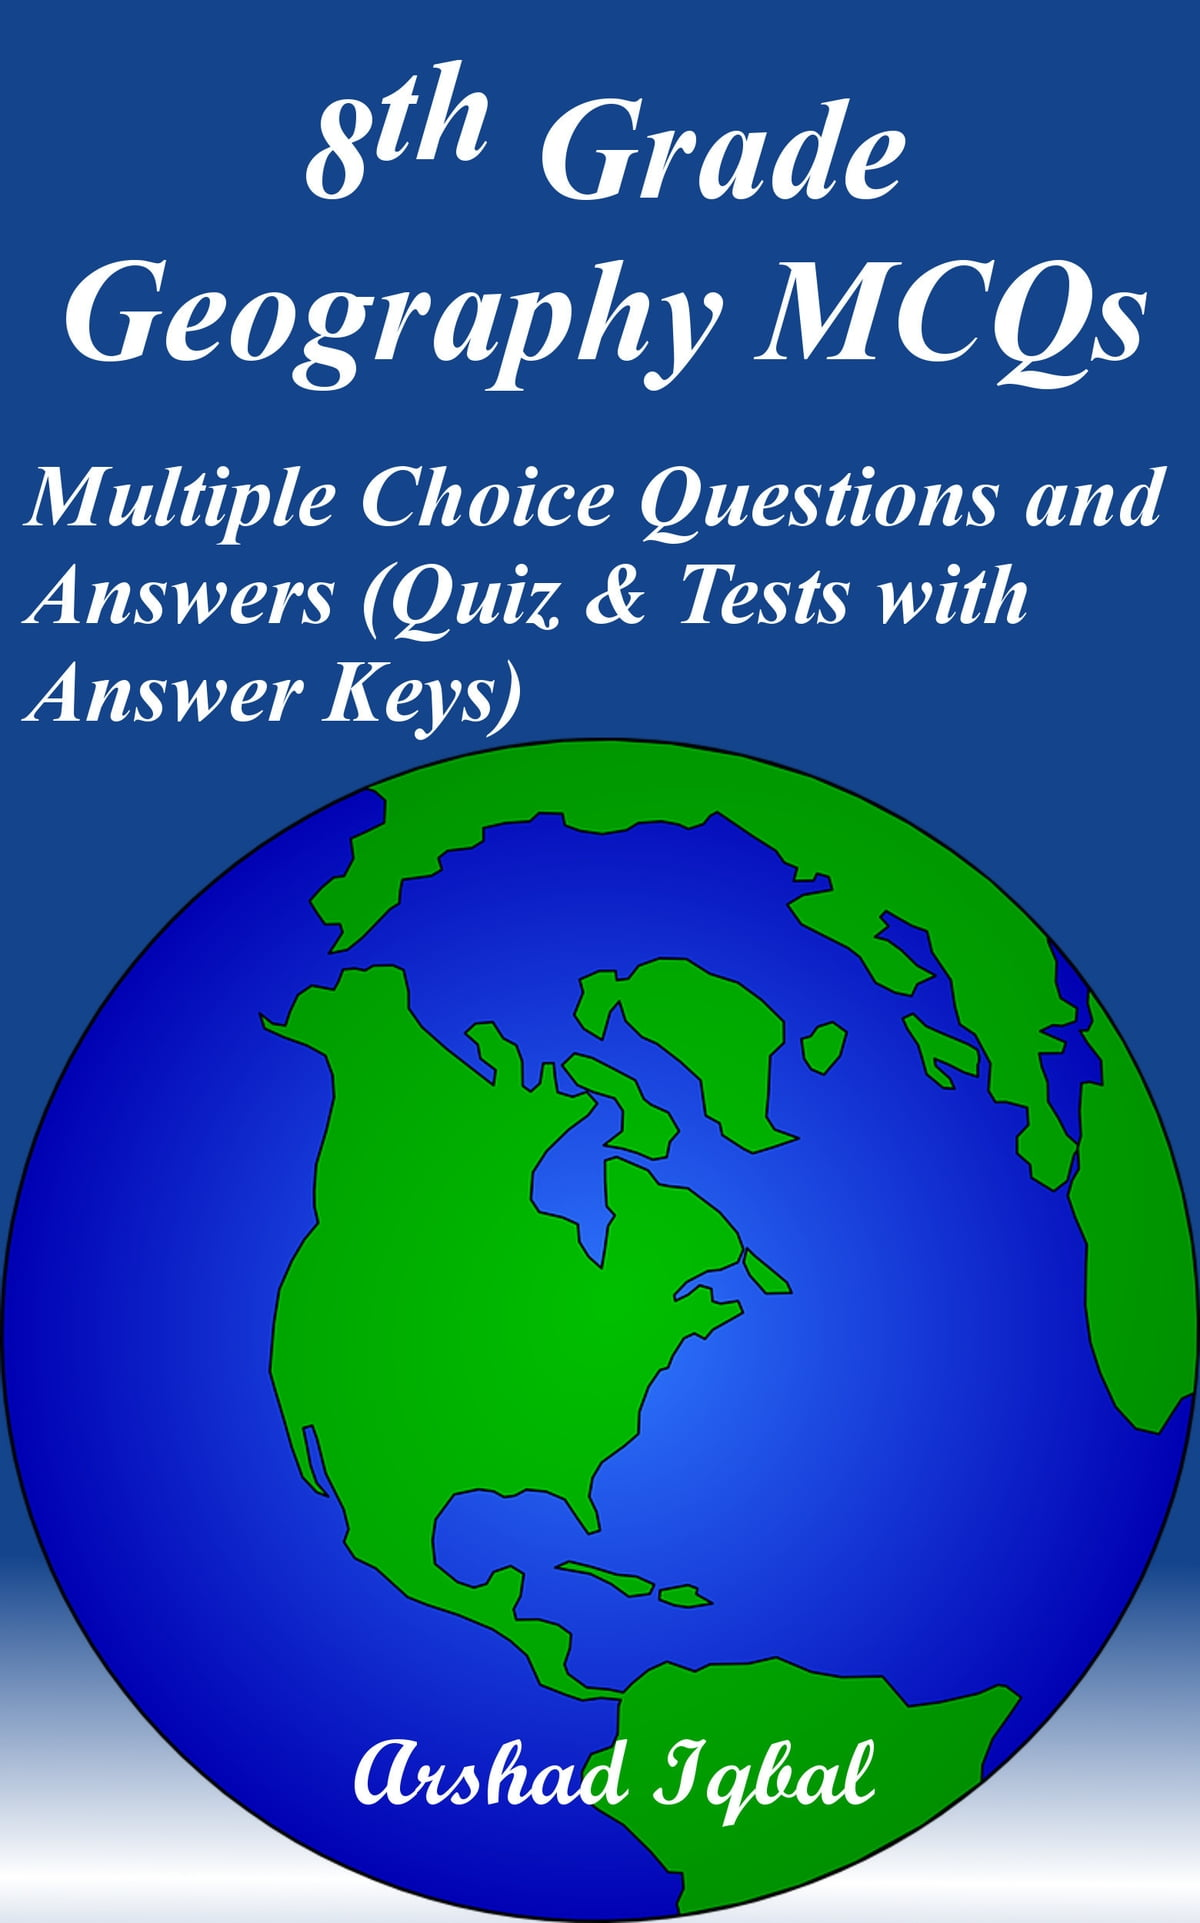 8th Grade Geography Mcqs Multiple Choice Questions And